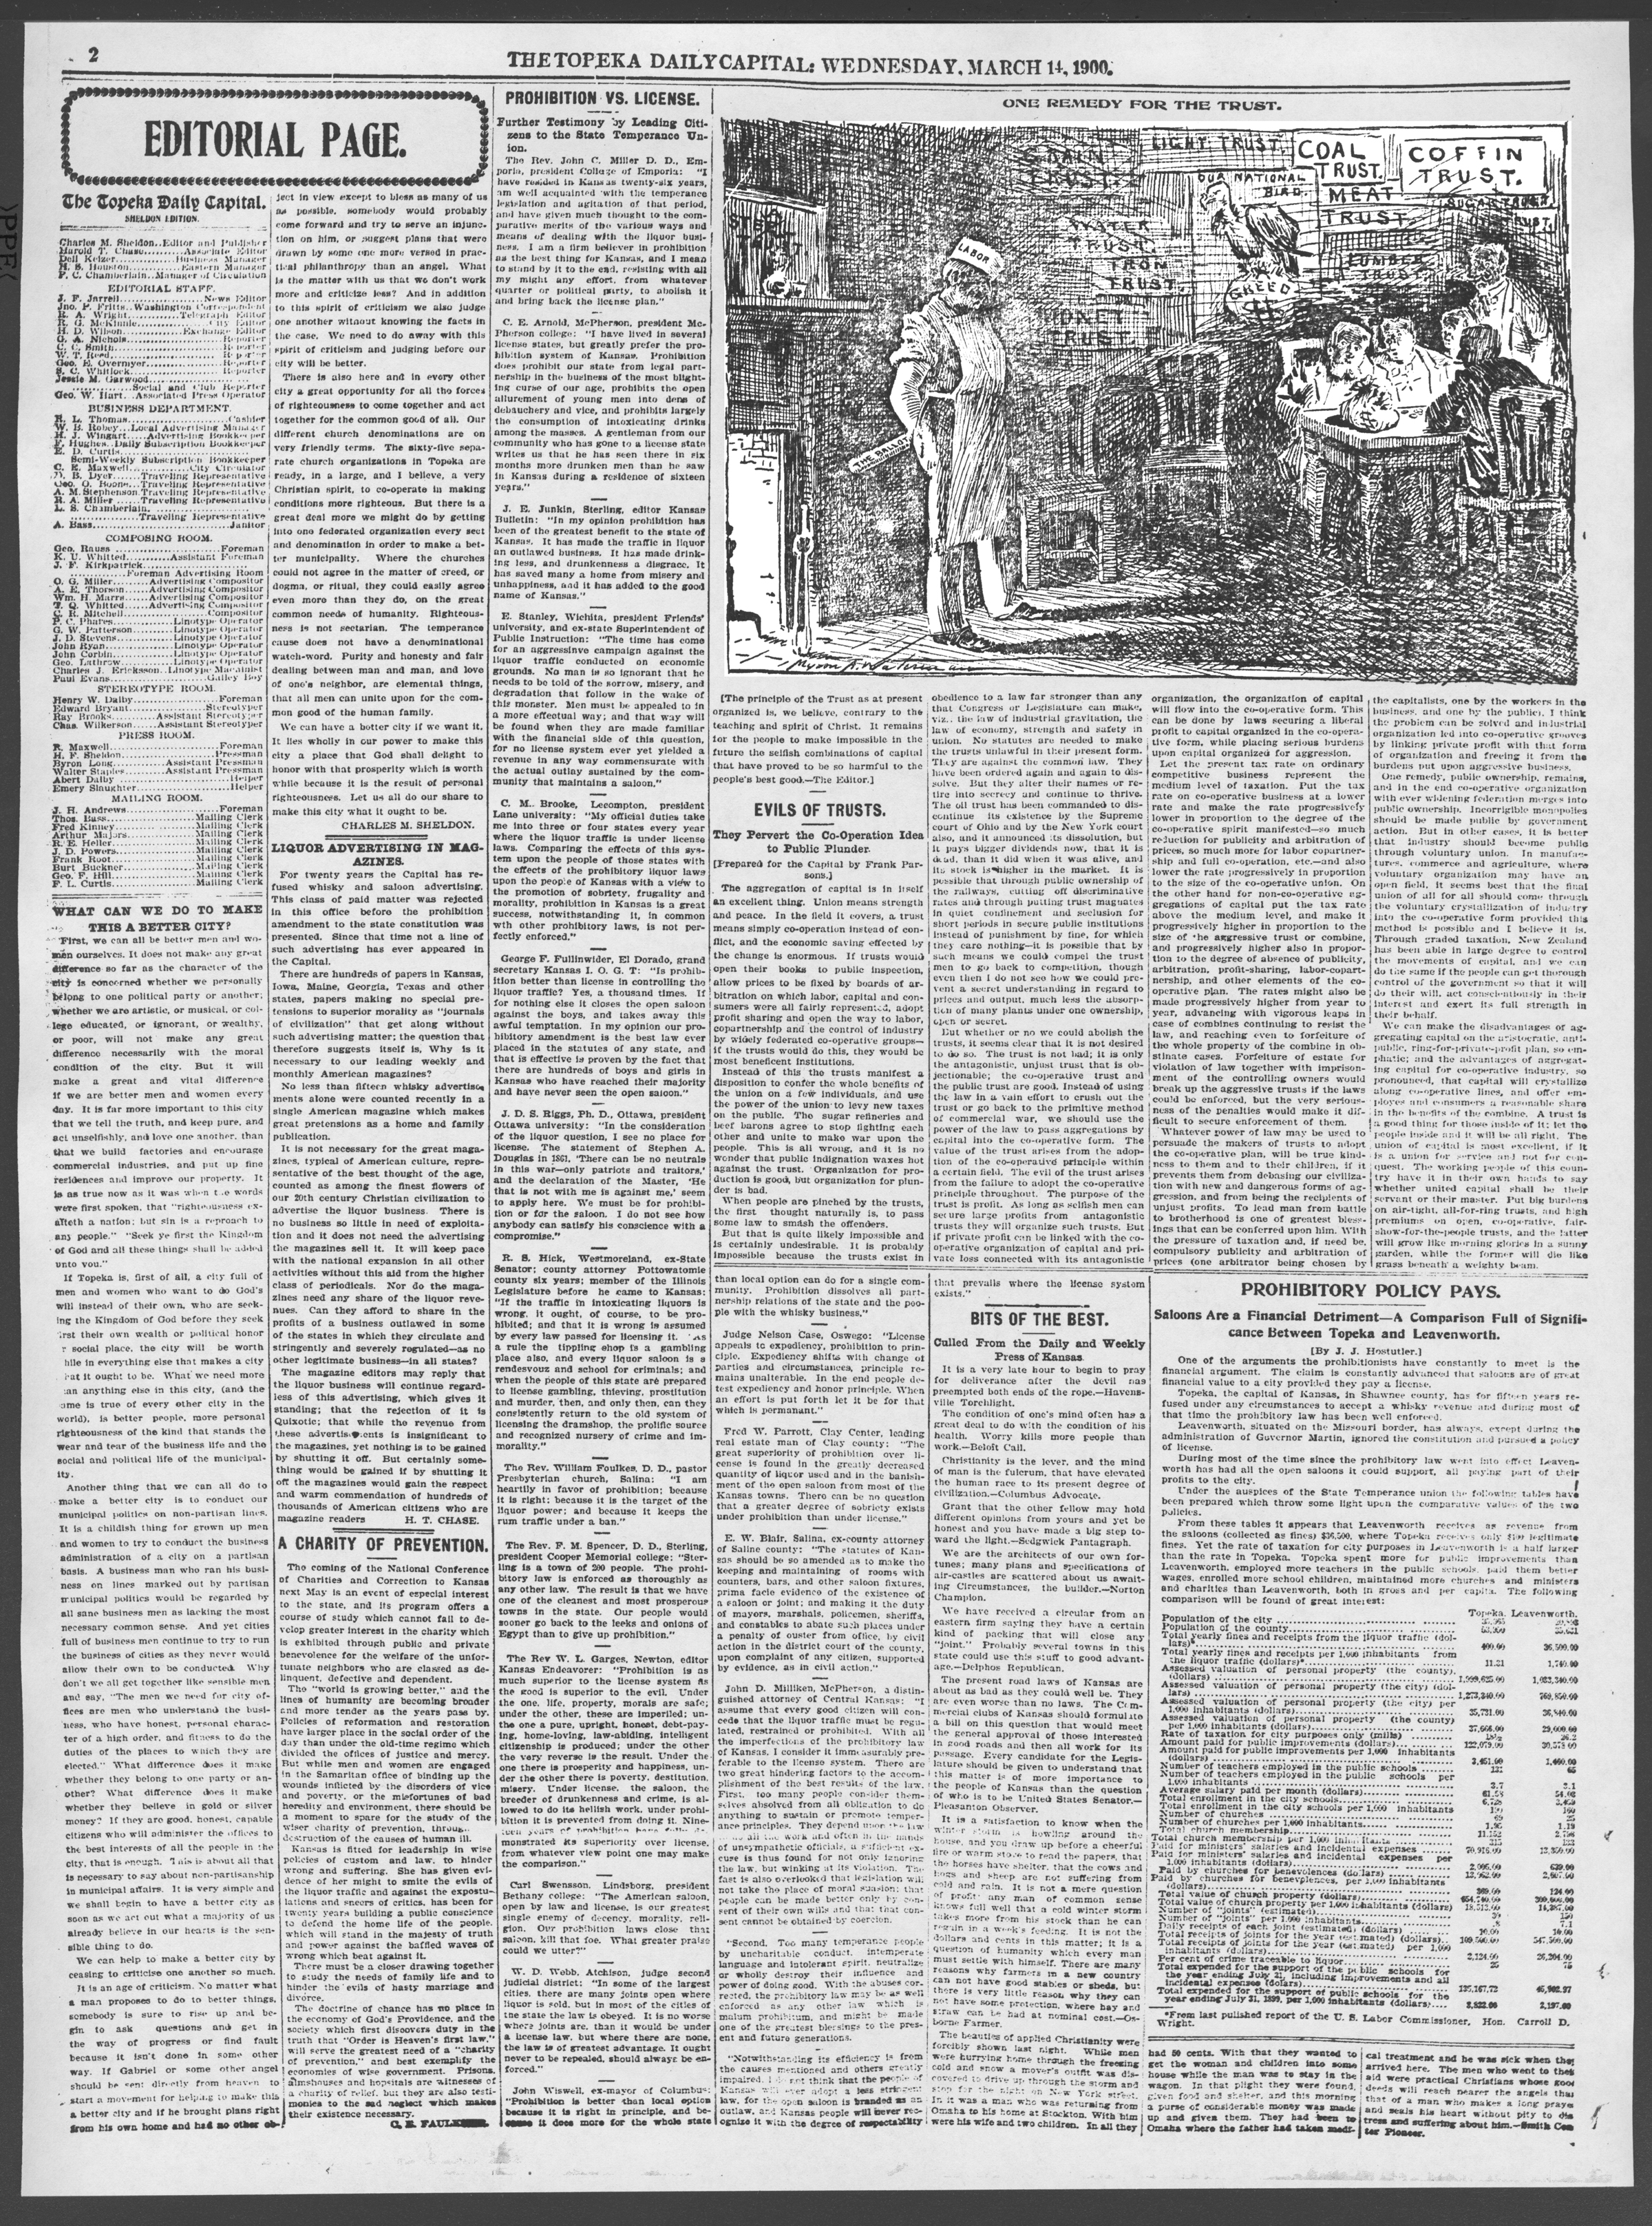 The Topeka daily capital. Sheldon edition - 2, Wednesday, March 14, 1900